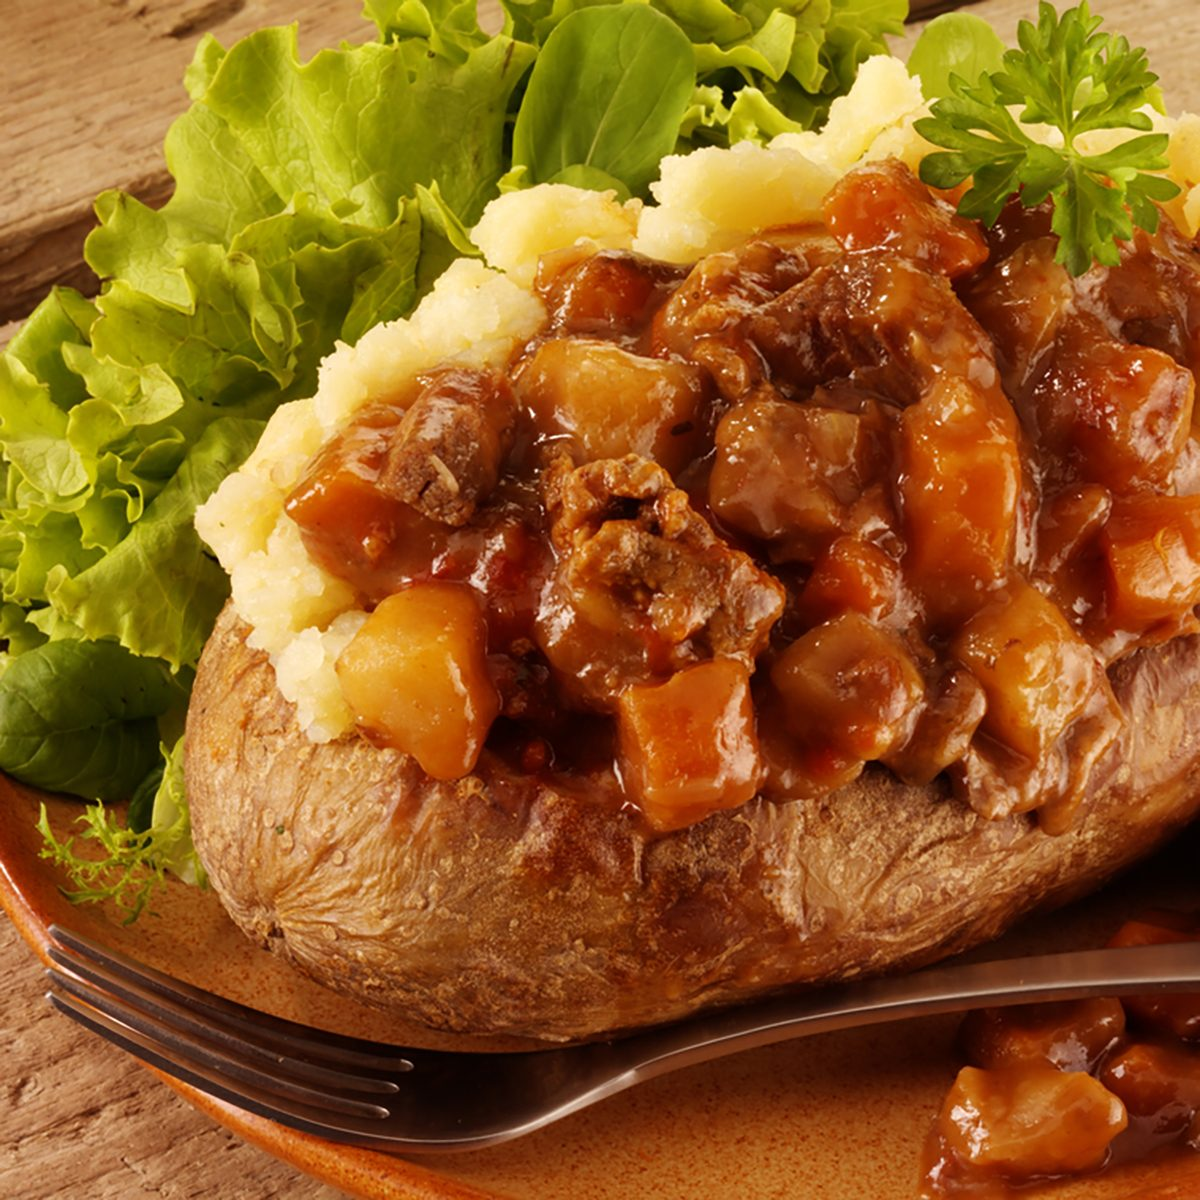 BAKED POTATO WITH BEEF STEW